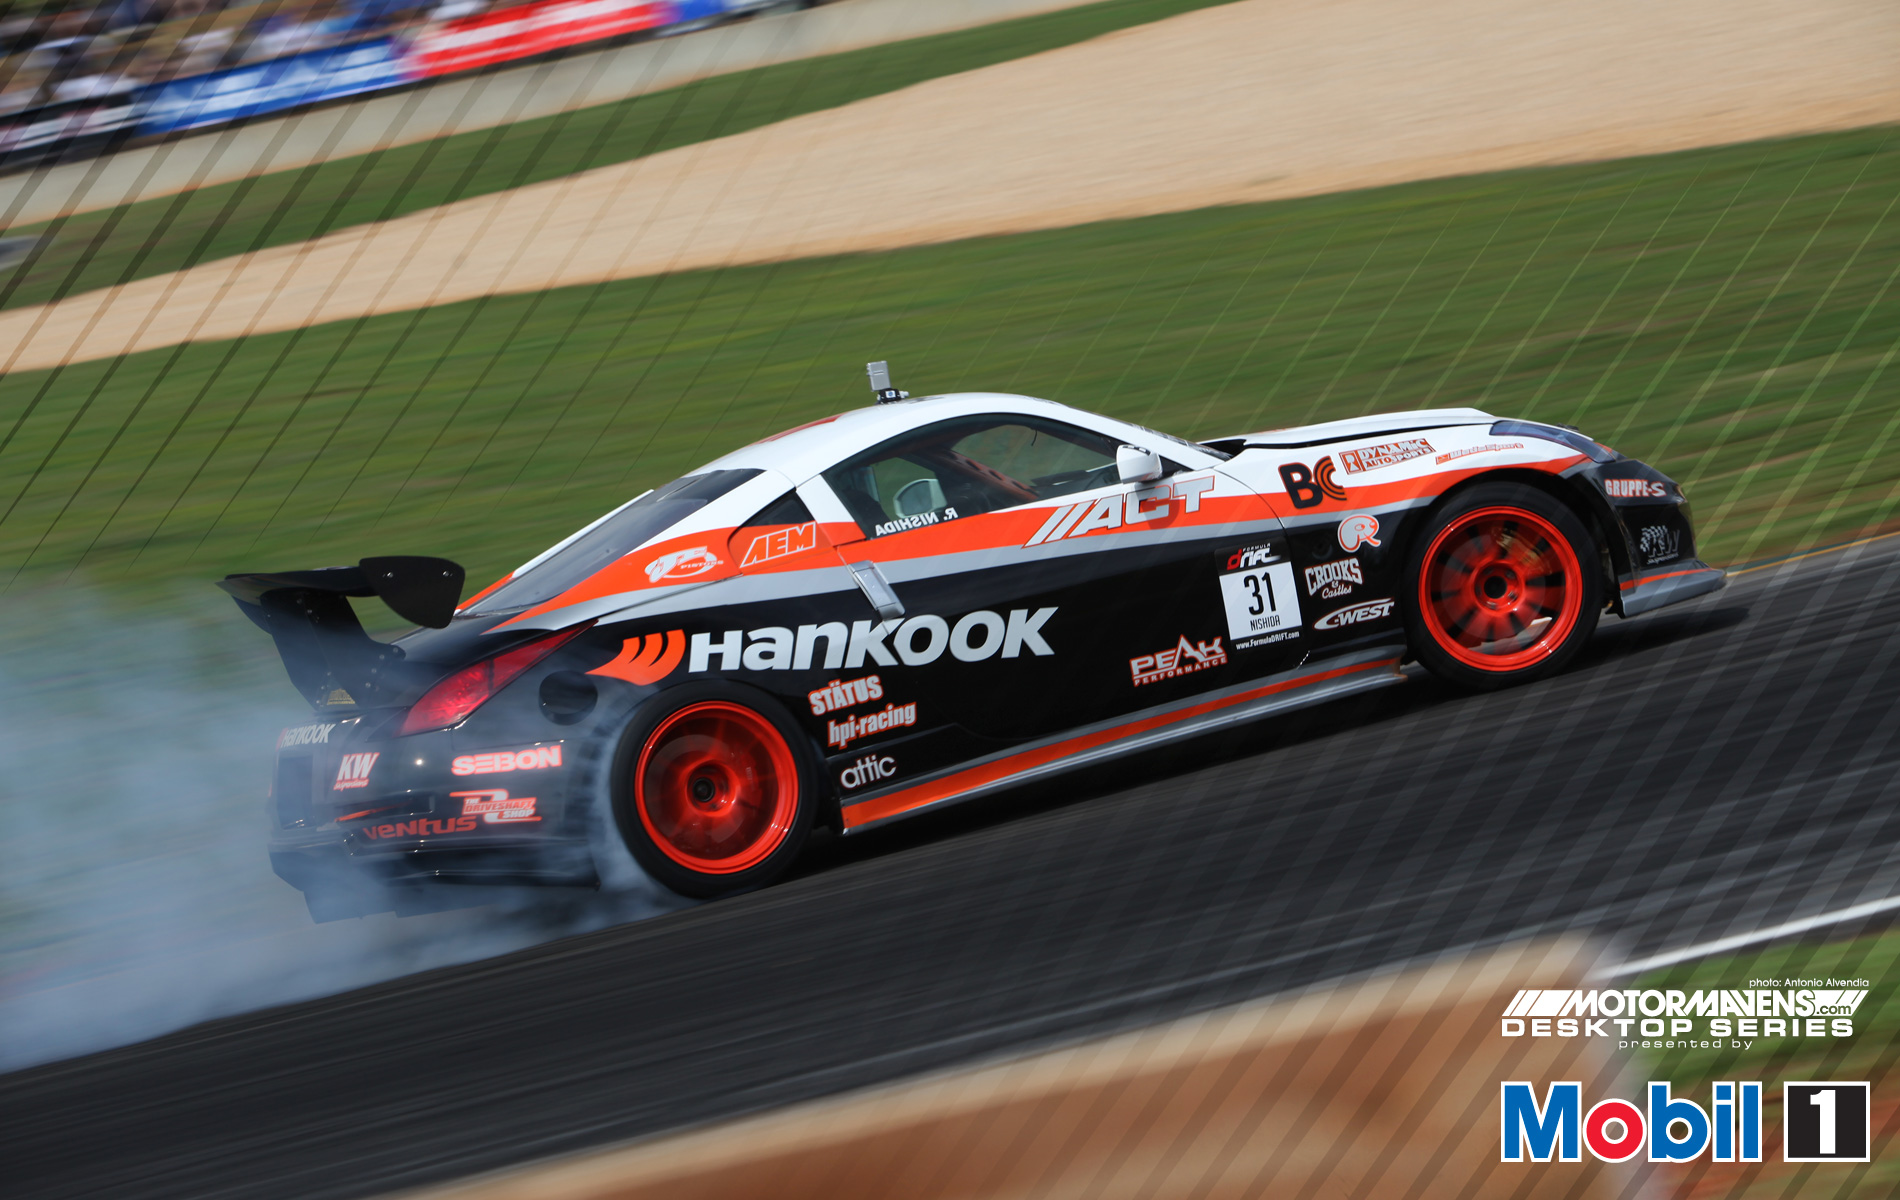 Hankook 350Z at Road Atlanta